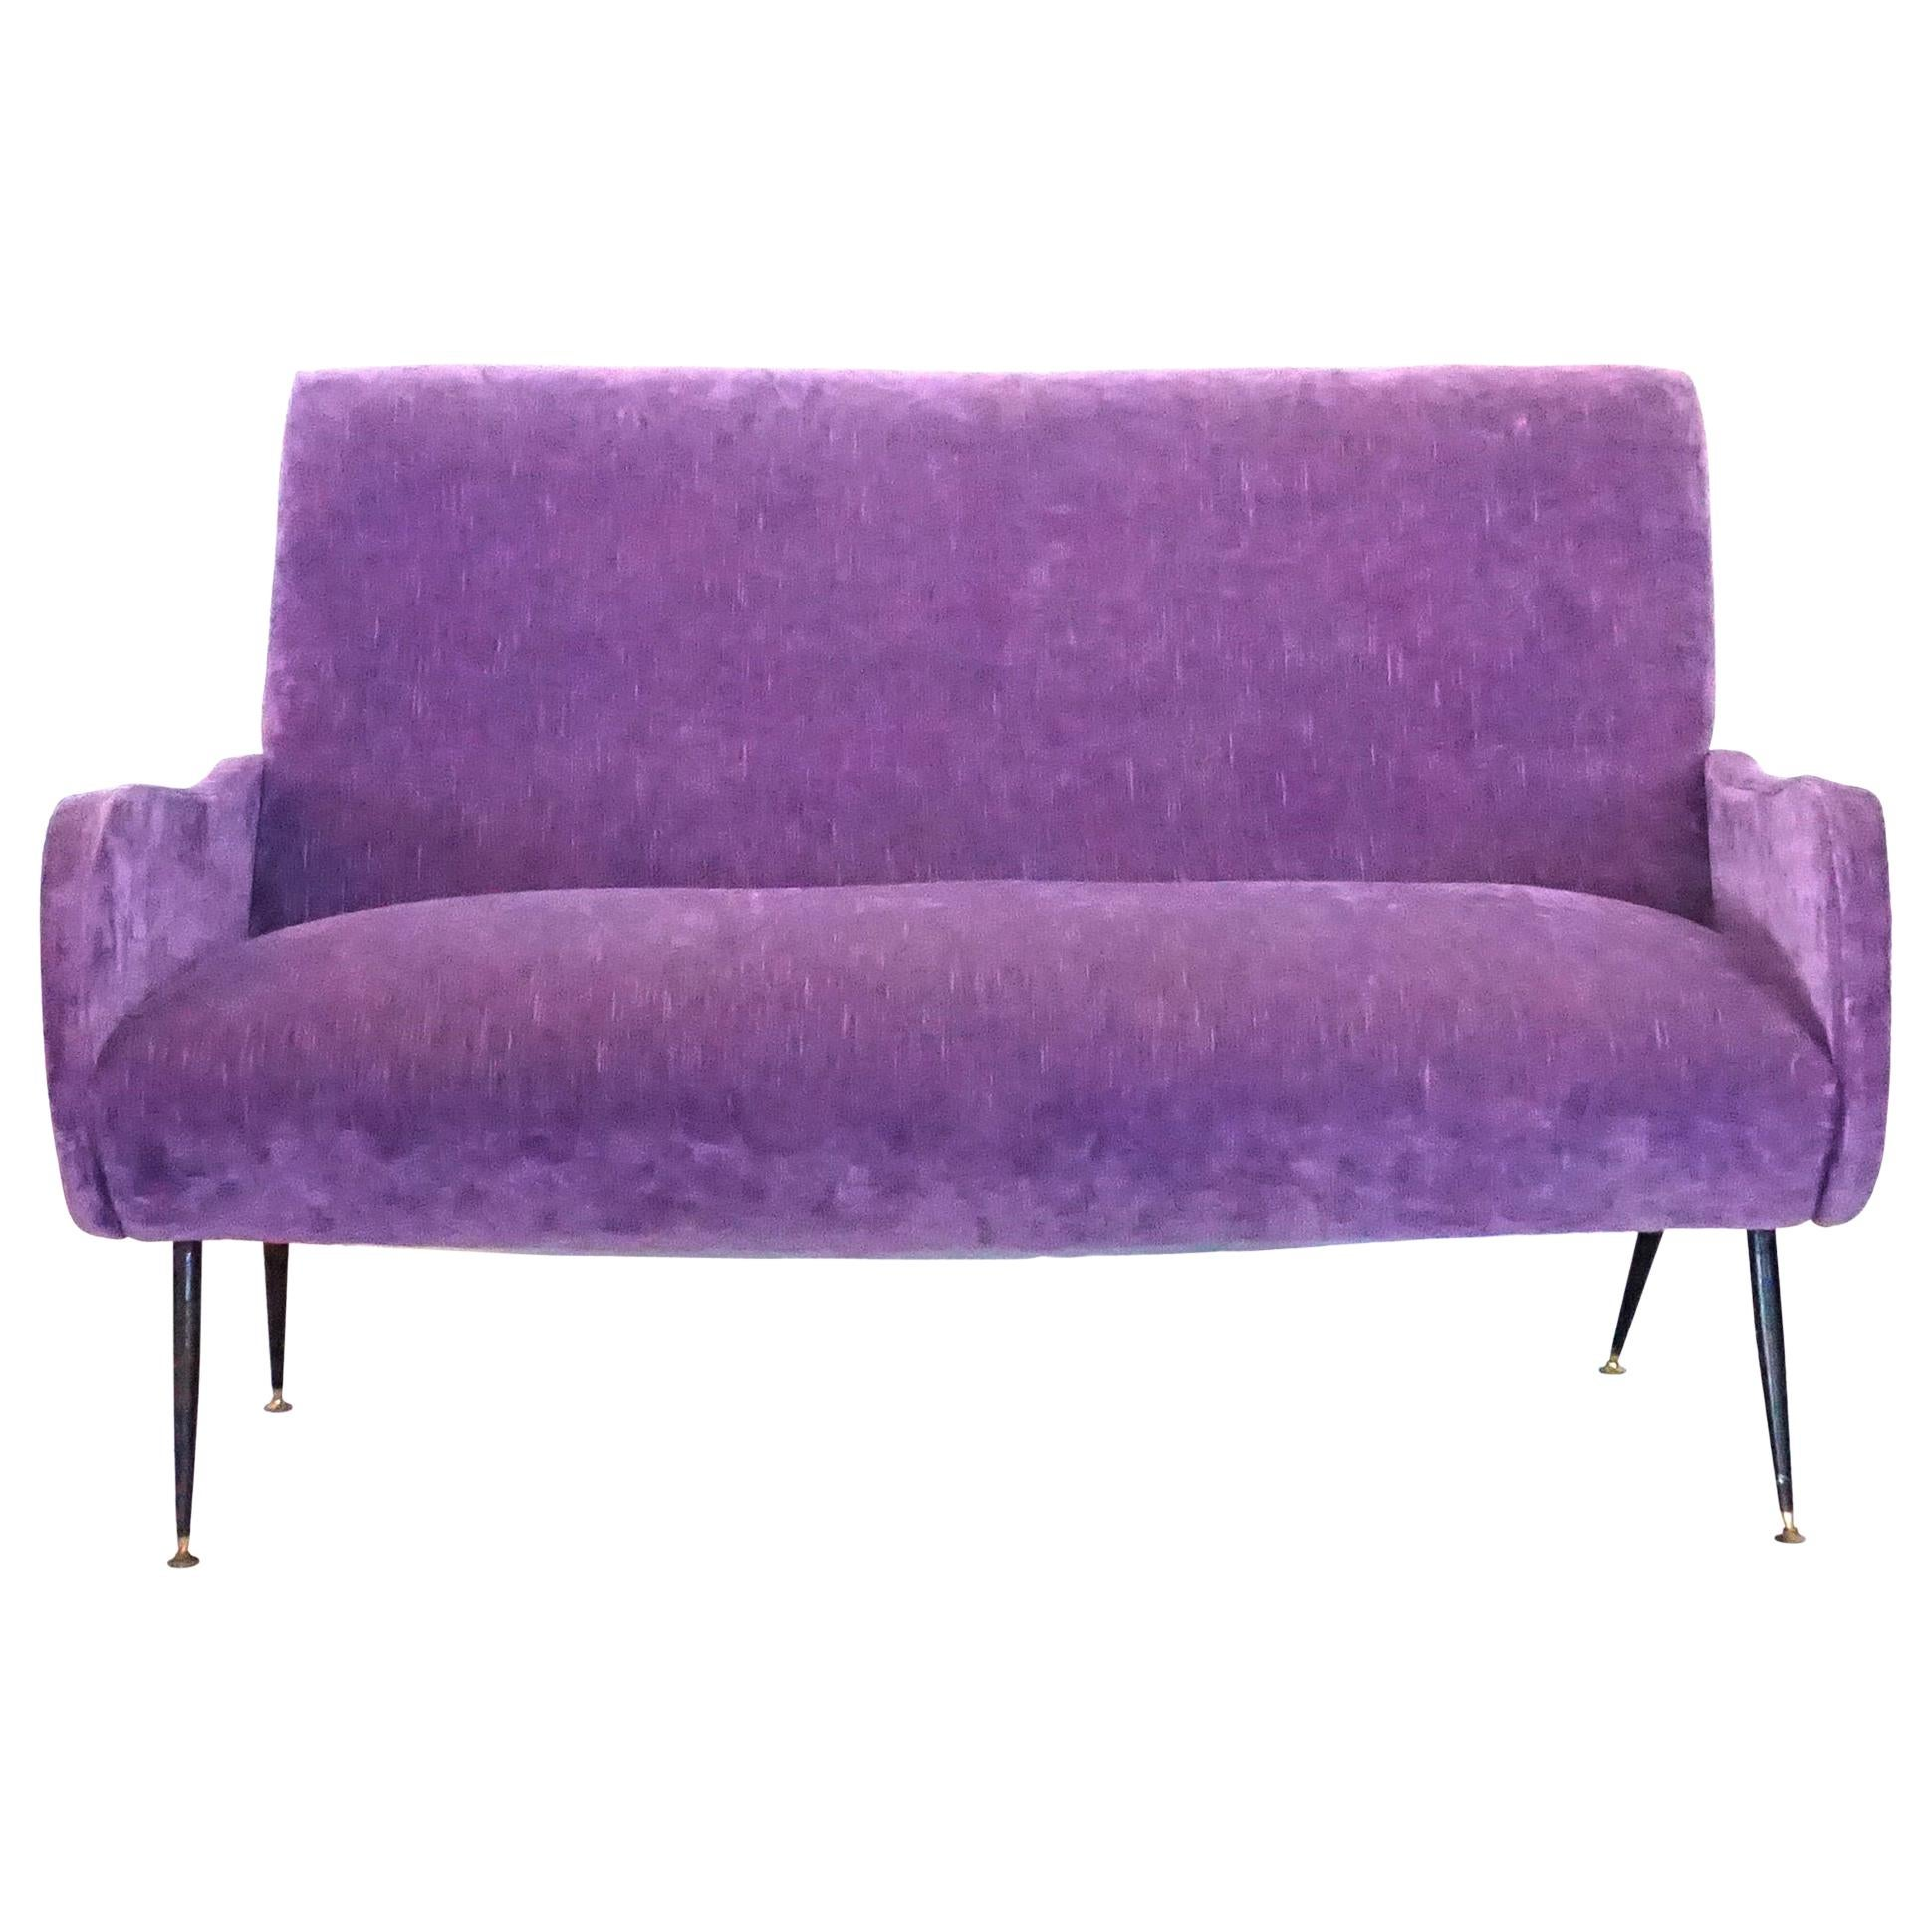 20th Century Lila Italian Small Two-Seat Sofa by Marco Zanuso For Sale at 1stDibs